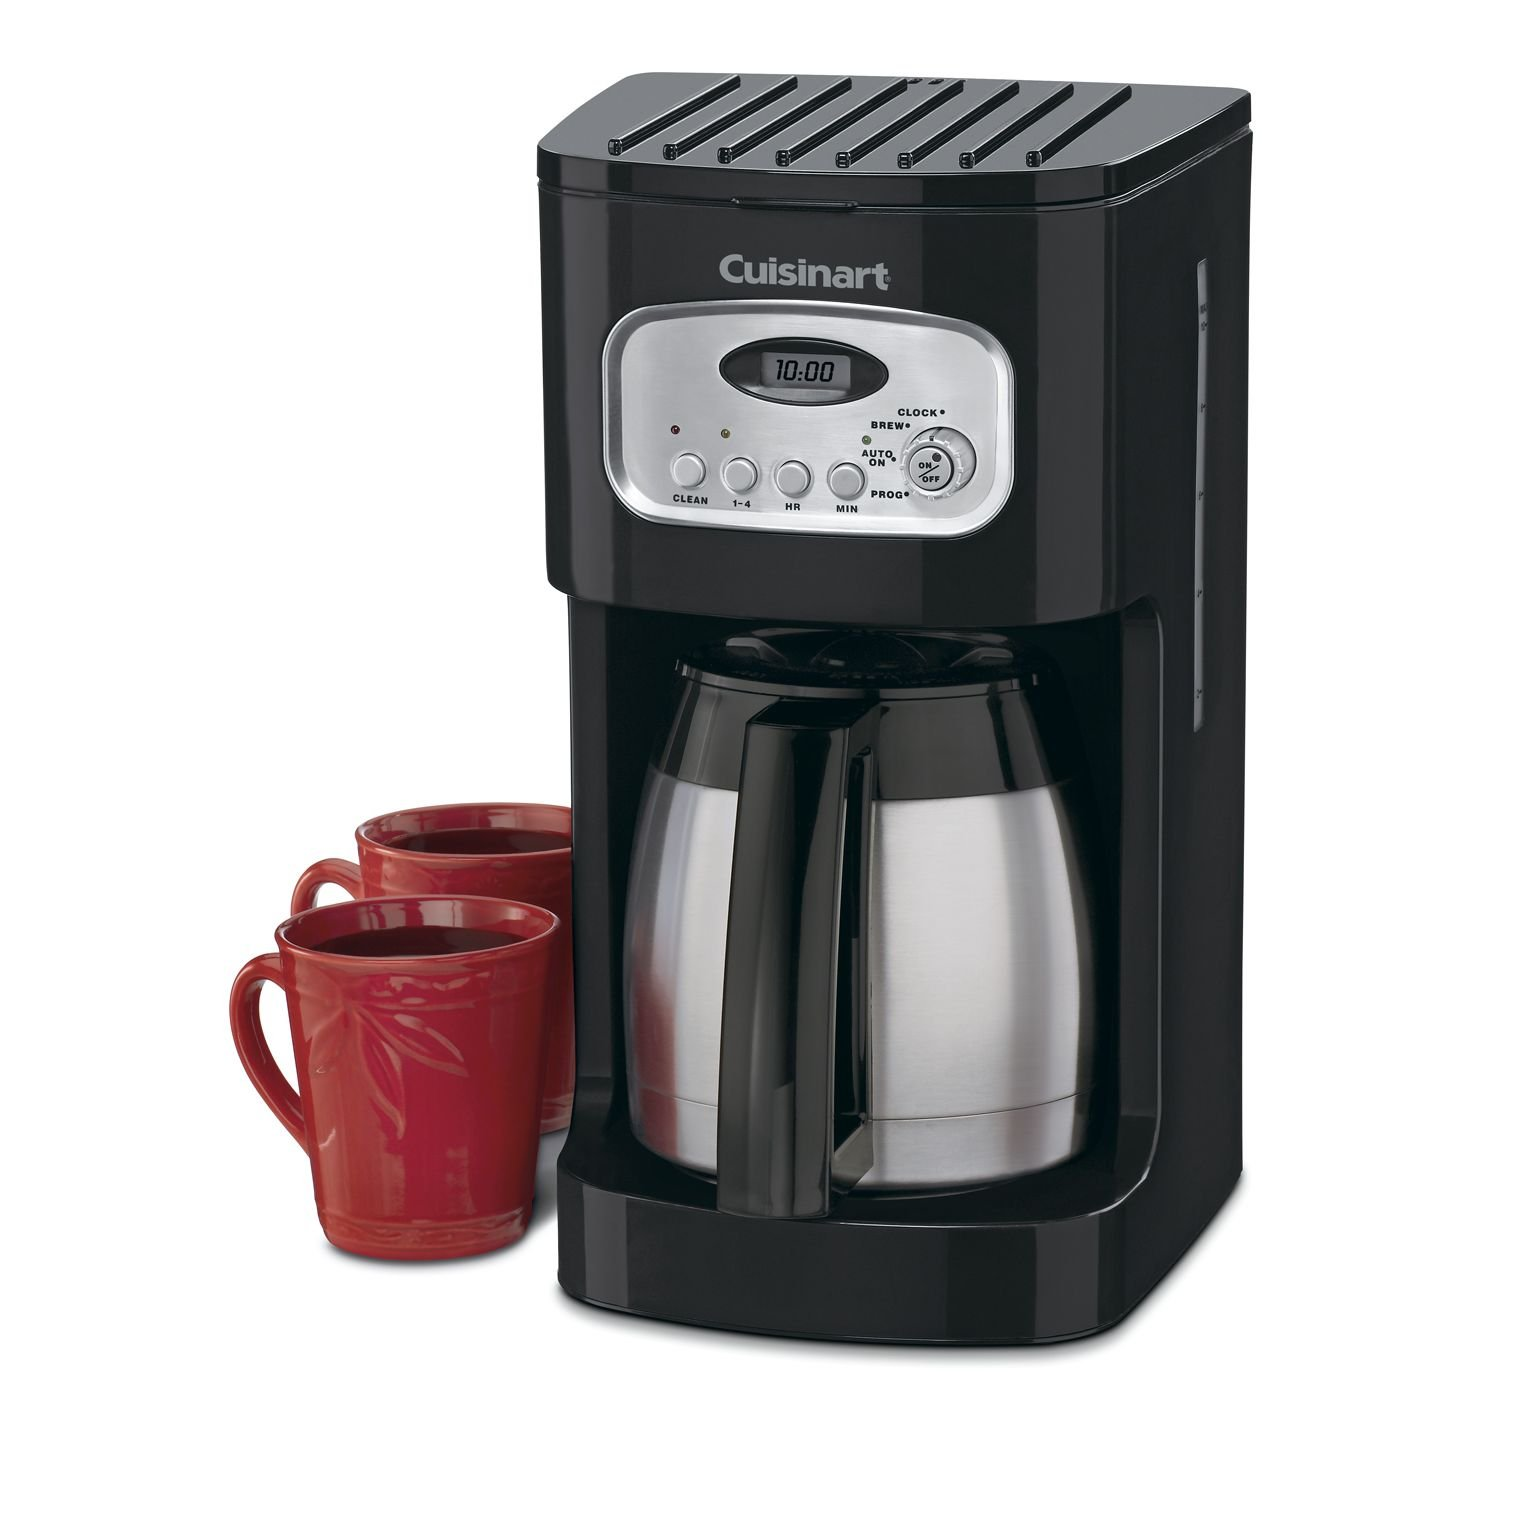 Cuisinart DCC-1150BK 10-Cup Thermal Coffeemaker Black w/ Additional Carafe by WhoIsCamera (Image #2)